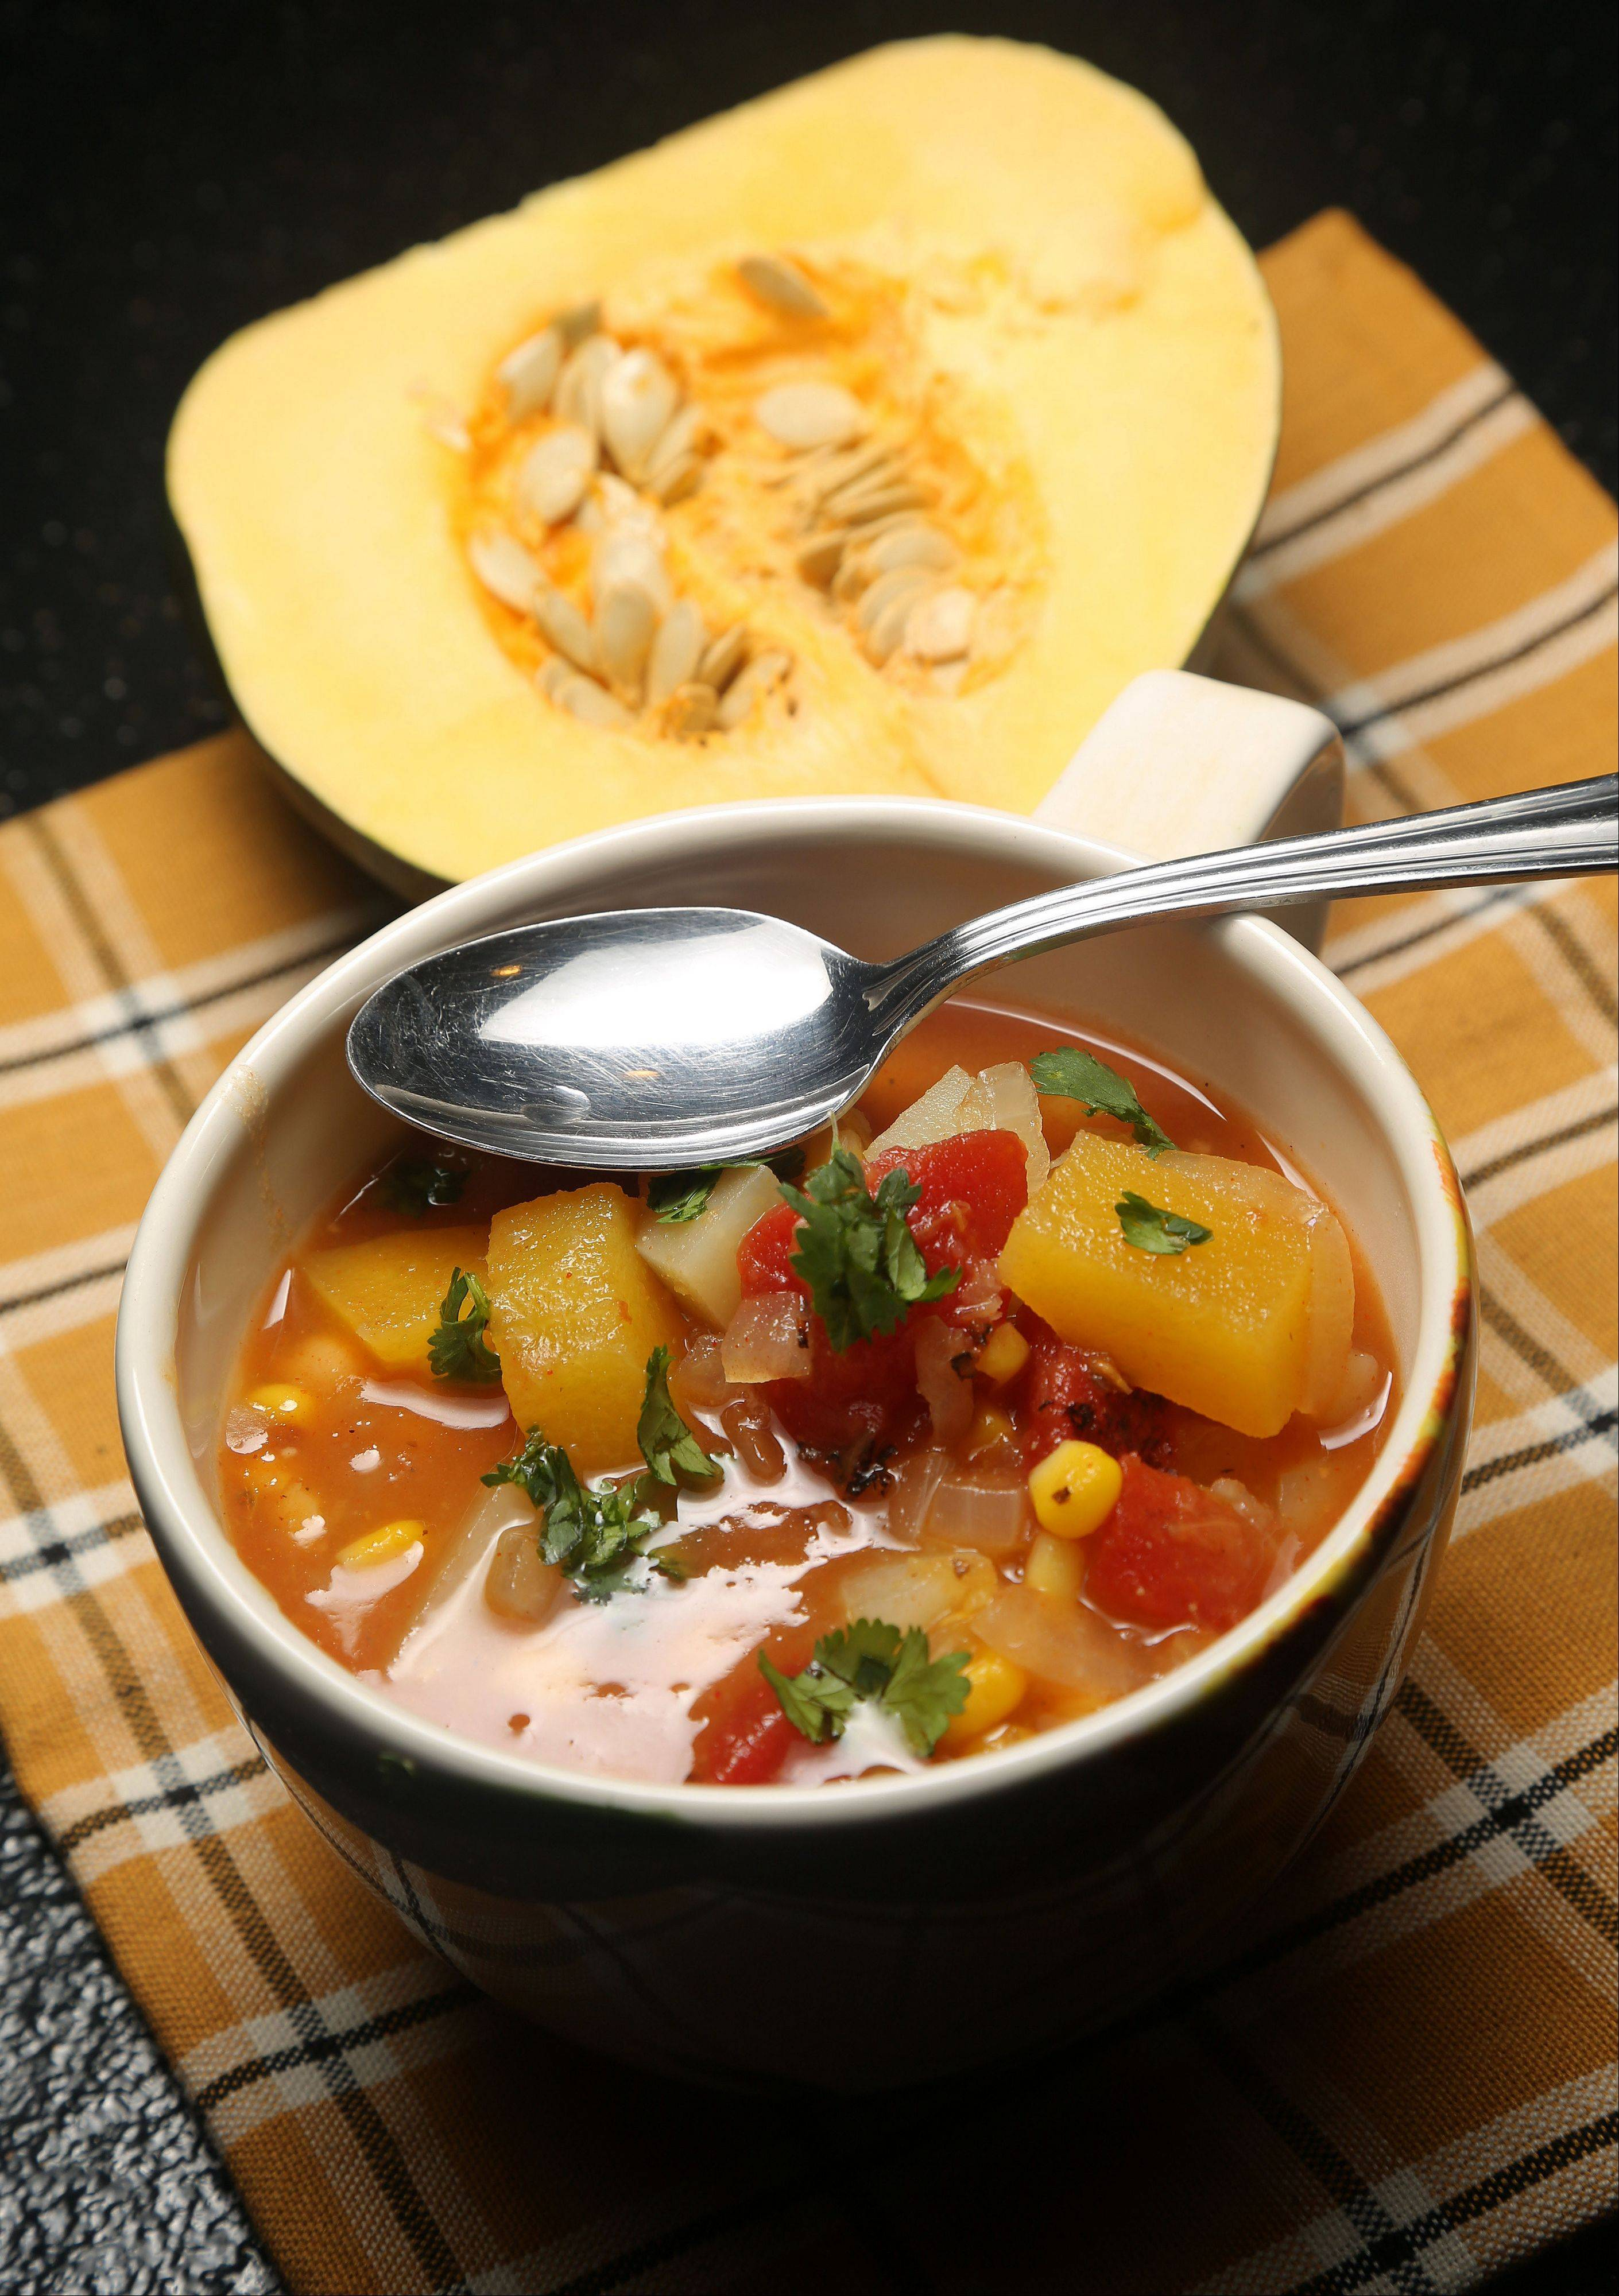 Autumn Soup for a Chilly, or Not-So-Chilly, Night